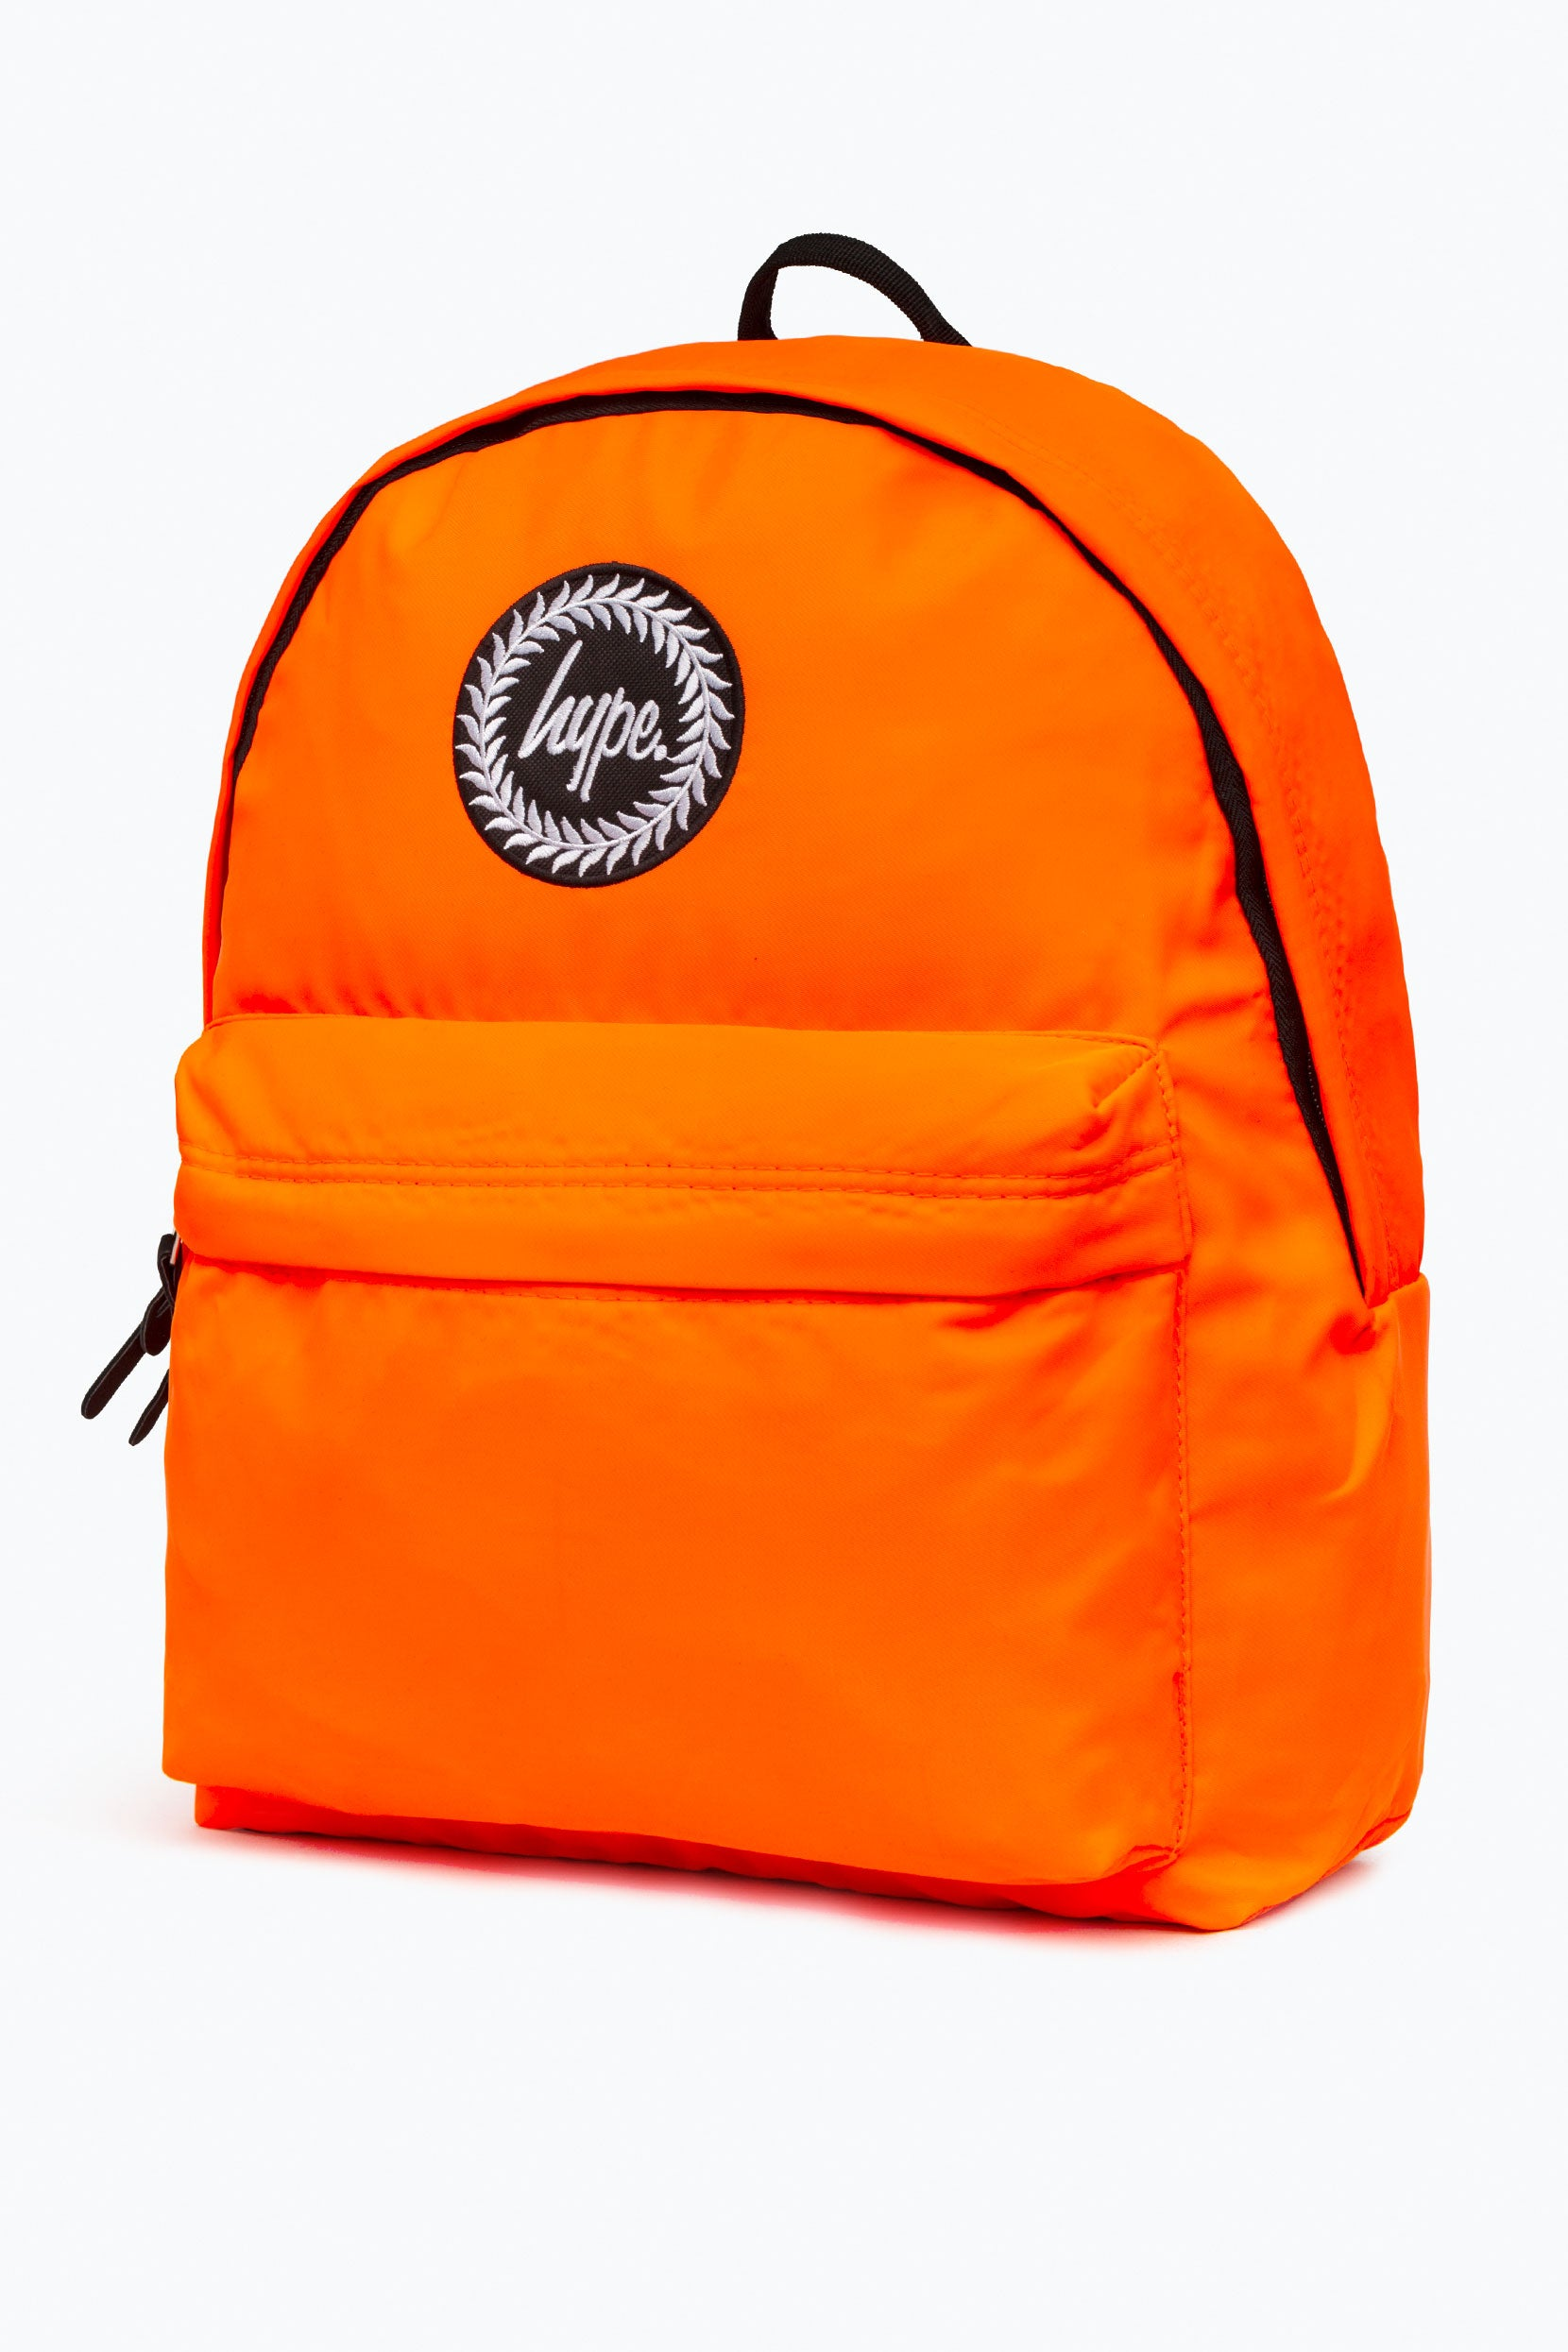 aa6300ddc HYPE ORANGE FLURO BACKPACK – JustHype ltd